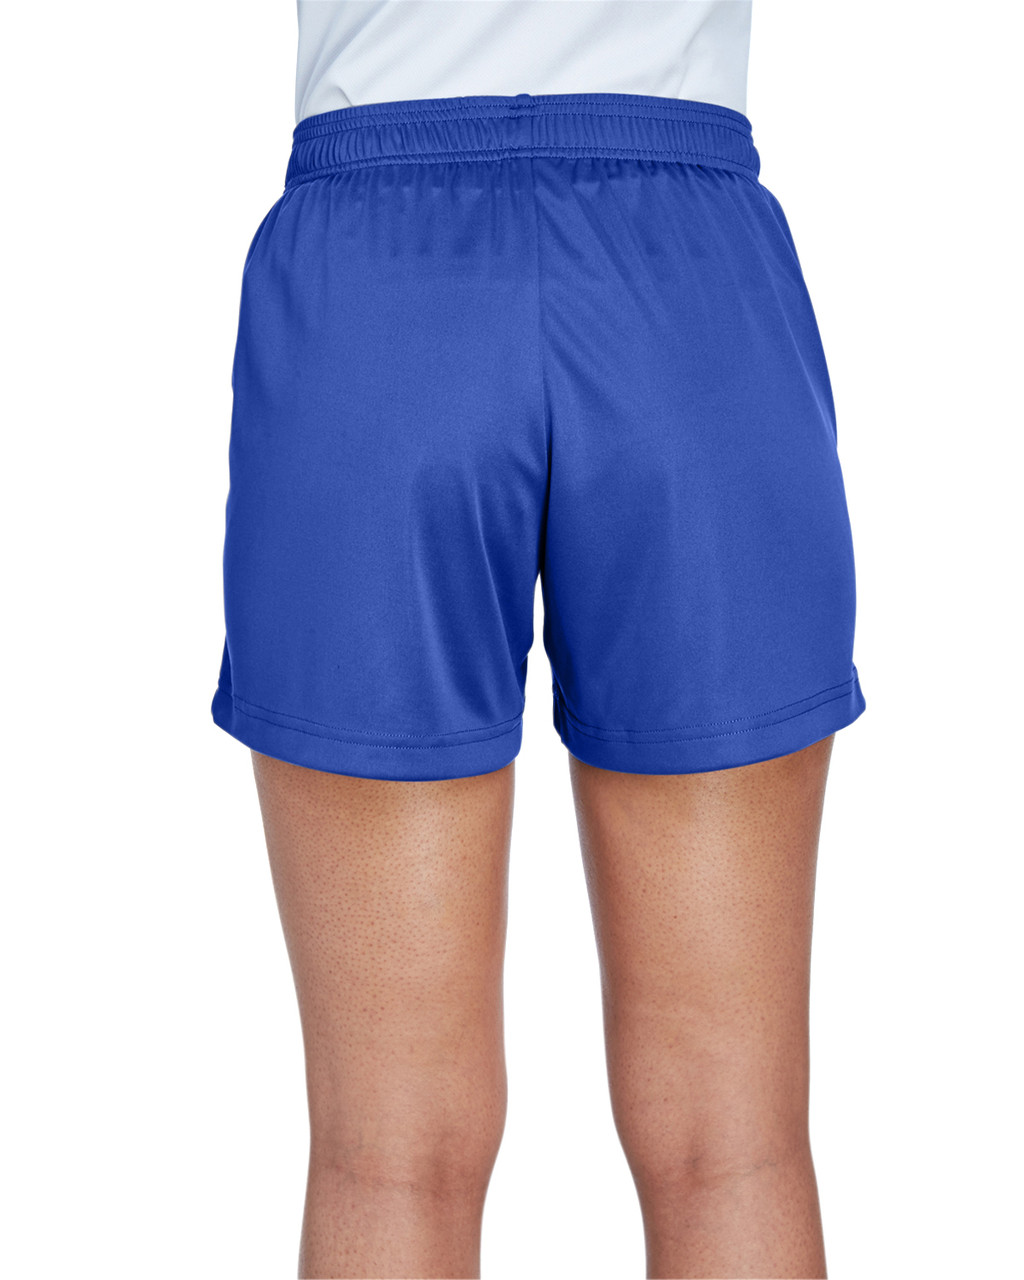 Sport Royal - Back, TT11SHW Team 365 Ladies' Zone Performance Short | T-shirt.ca